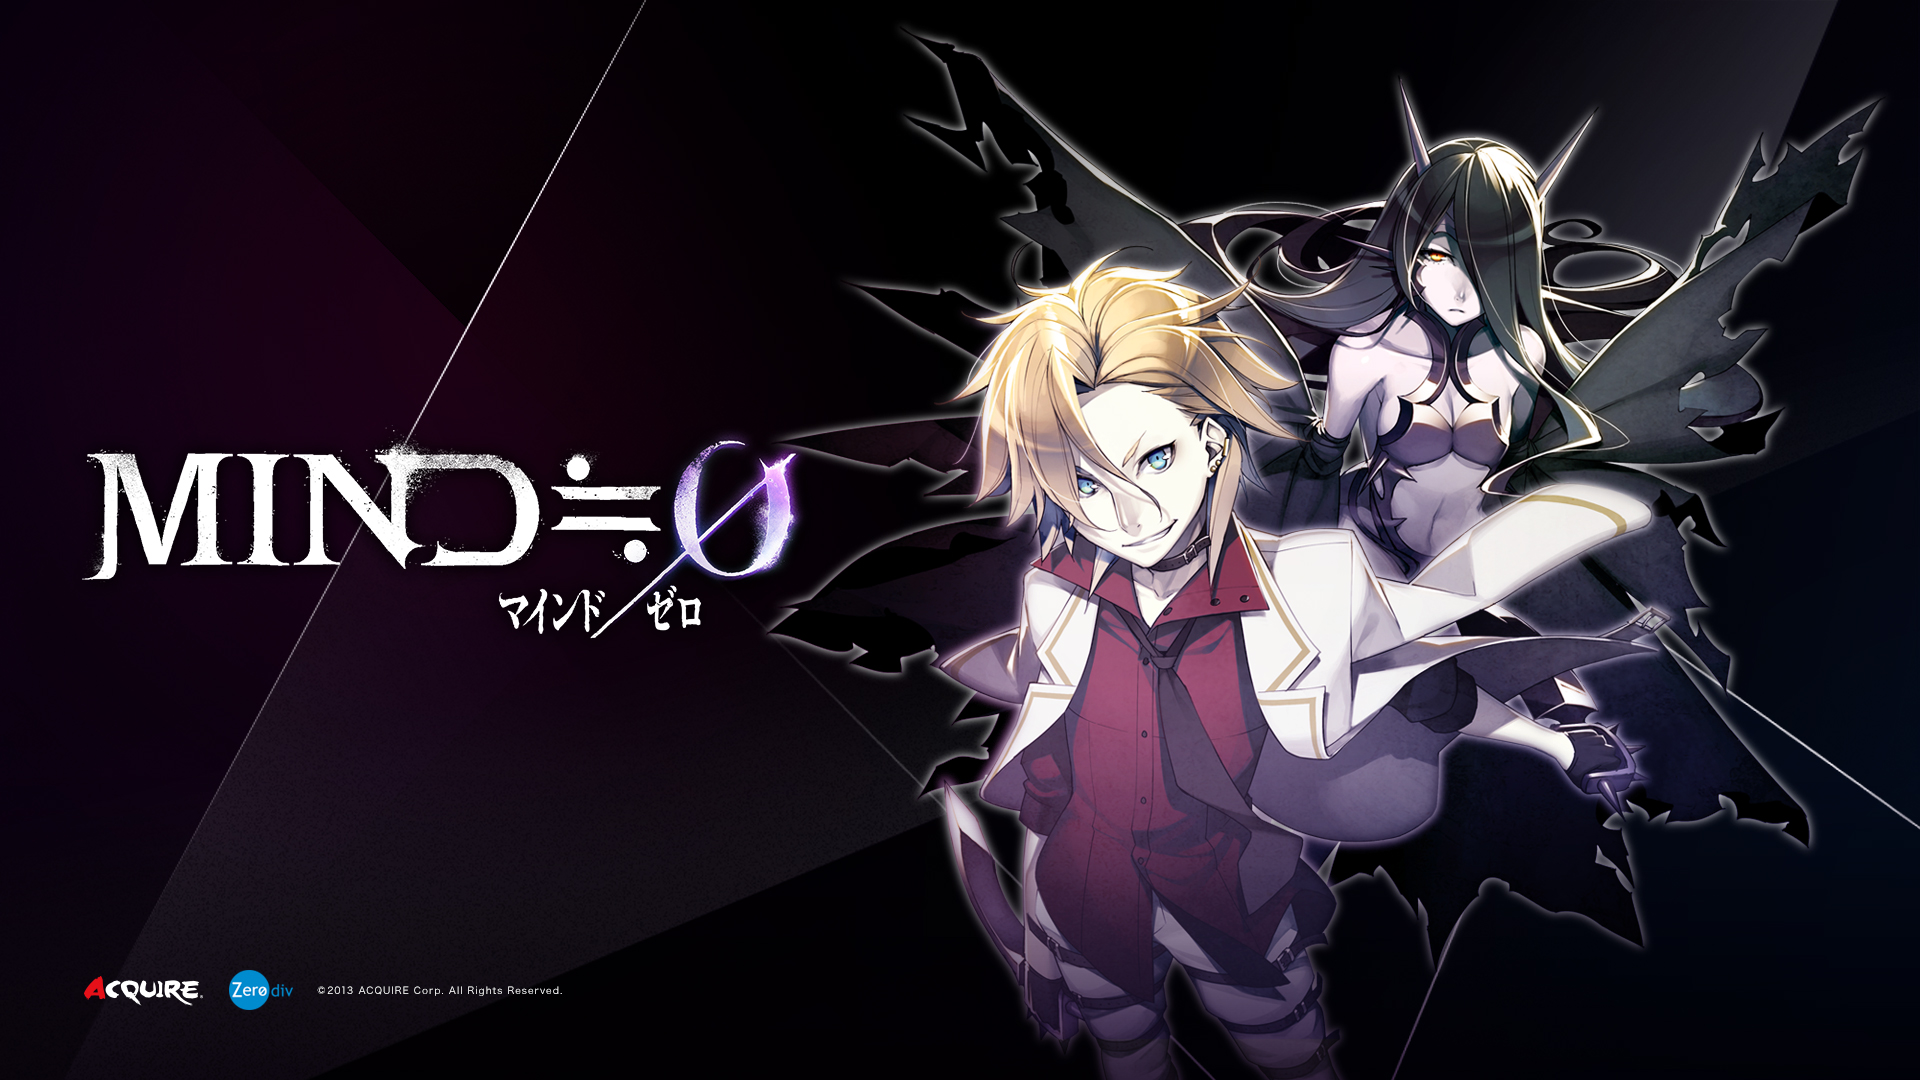 Games Movies Music Anime Mind 0   3 New 1080p Wallpapers 1920x1080